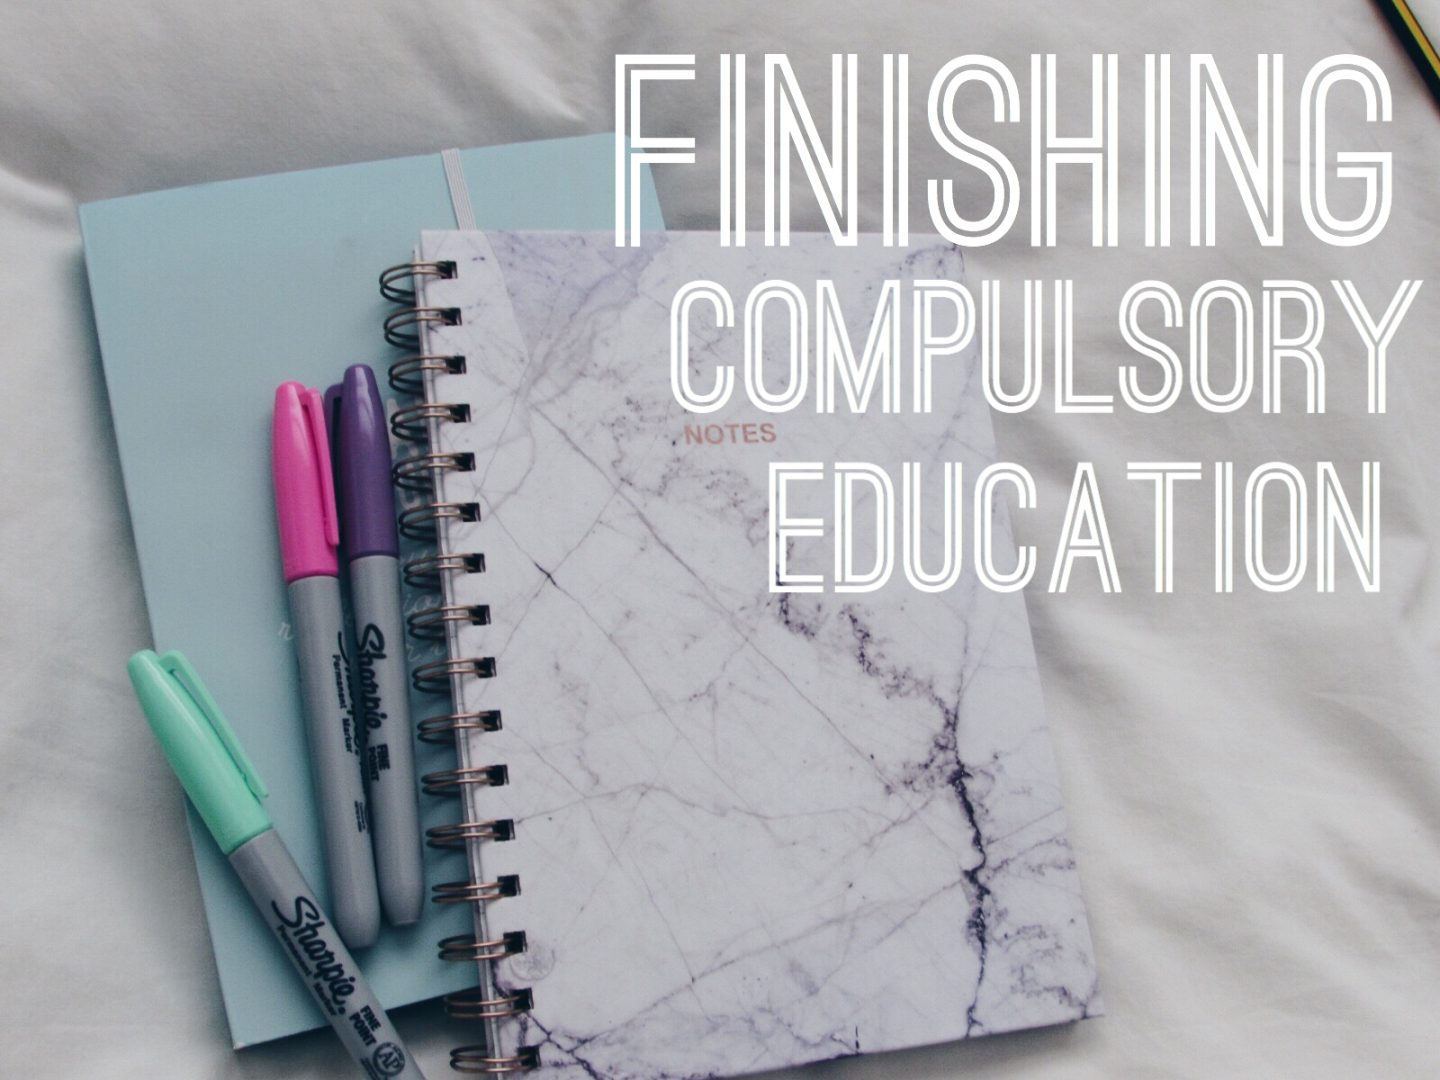 Life update: Finishing compulsory educucation